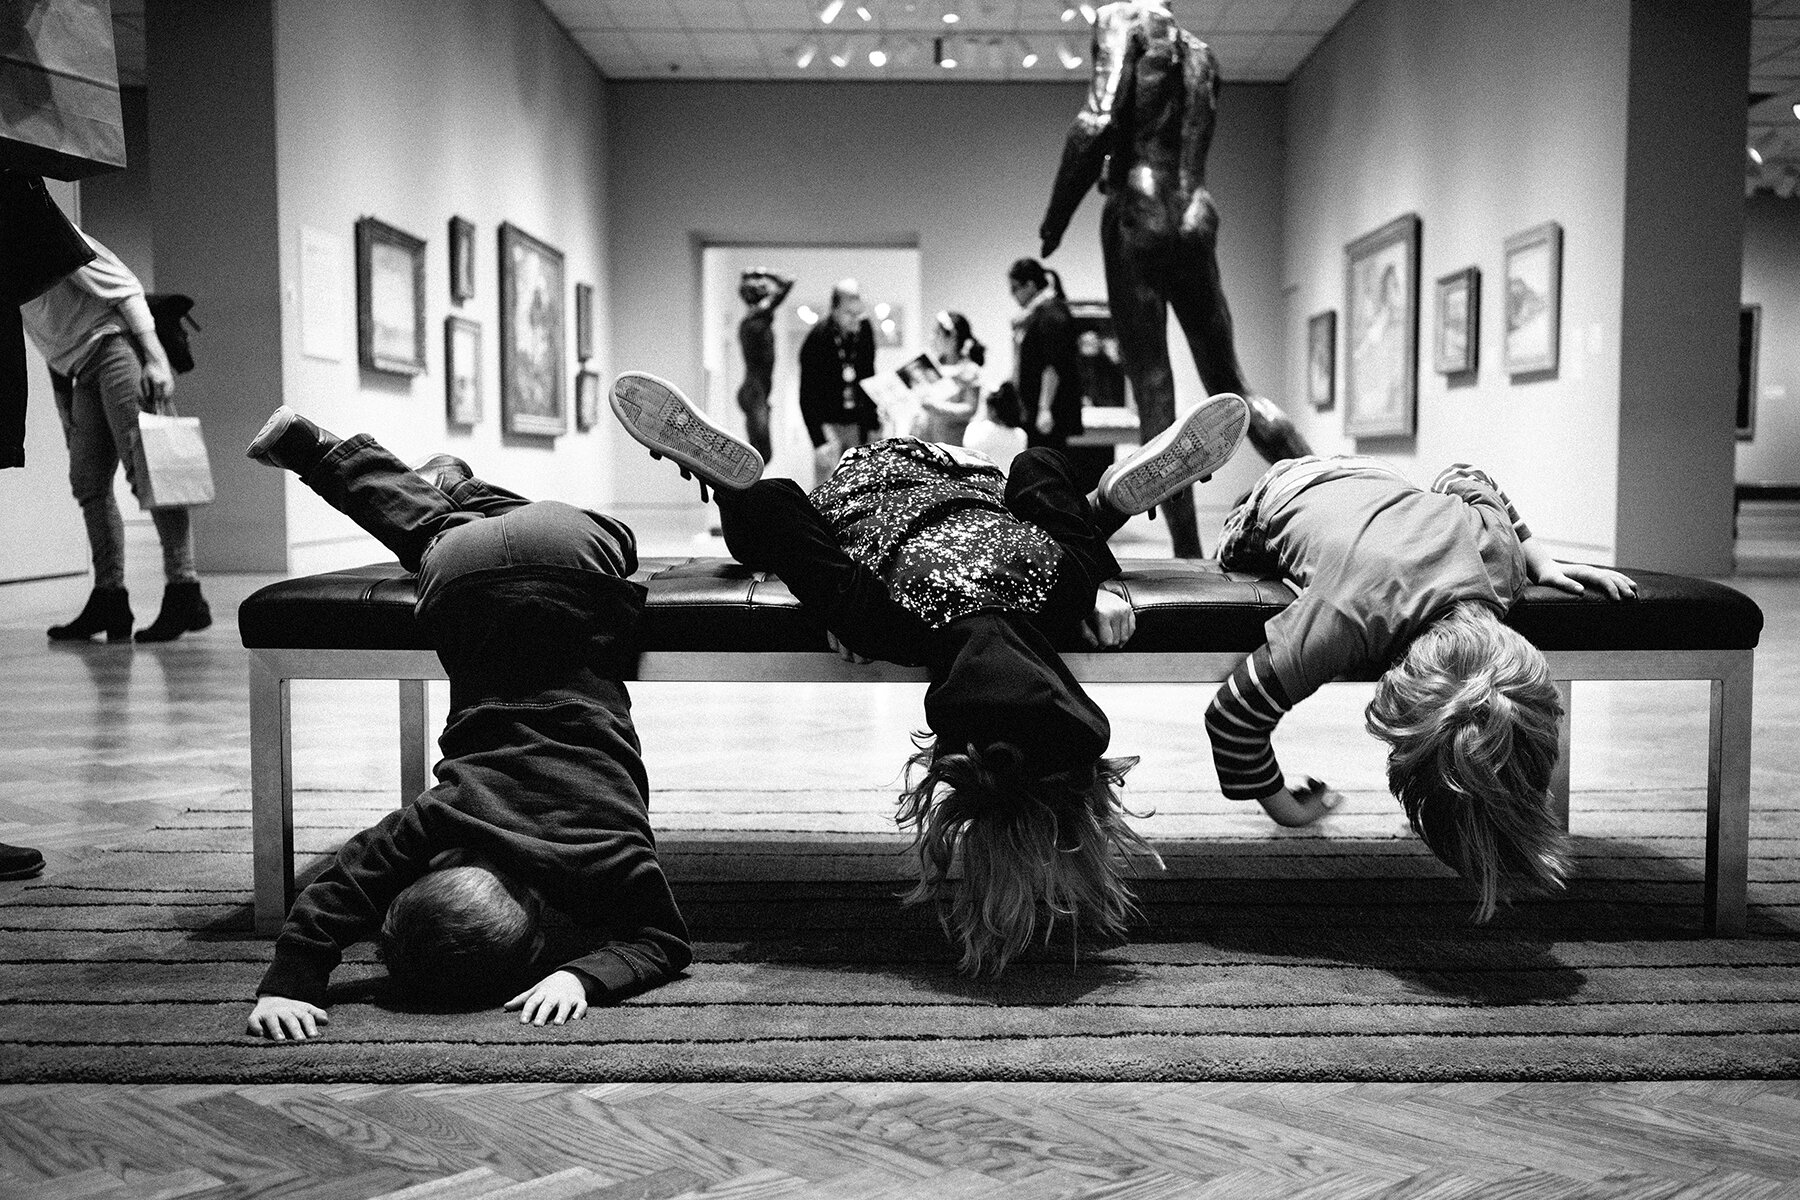 Exploring Minneapolis art museums with our son Oliver and friends